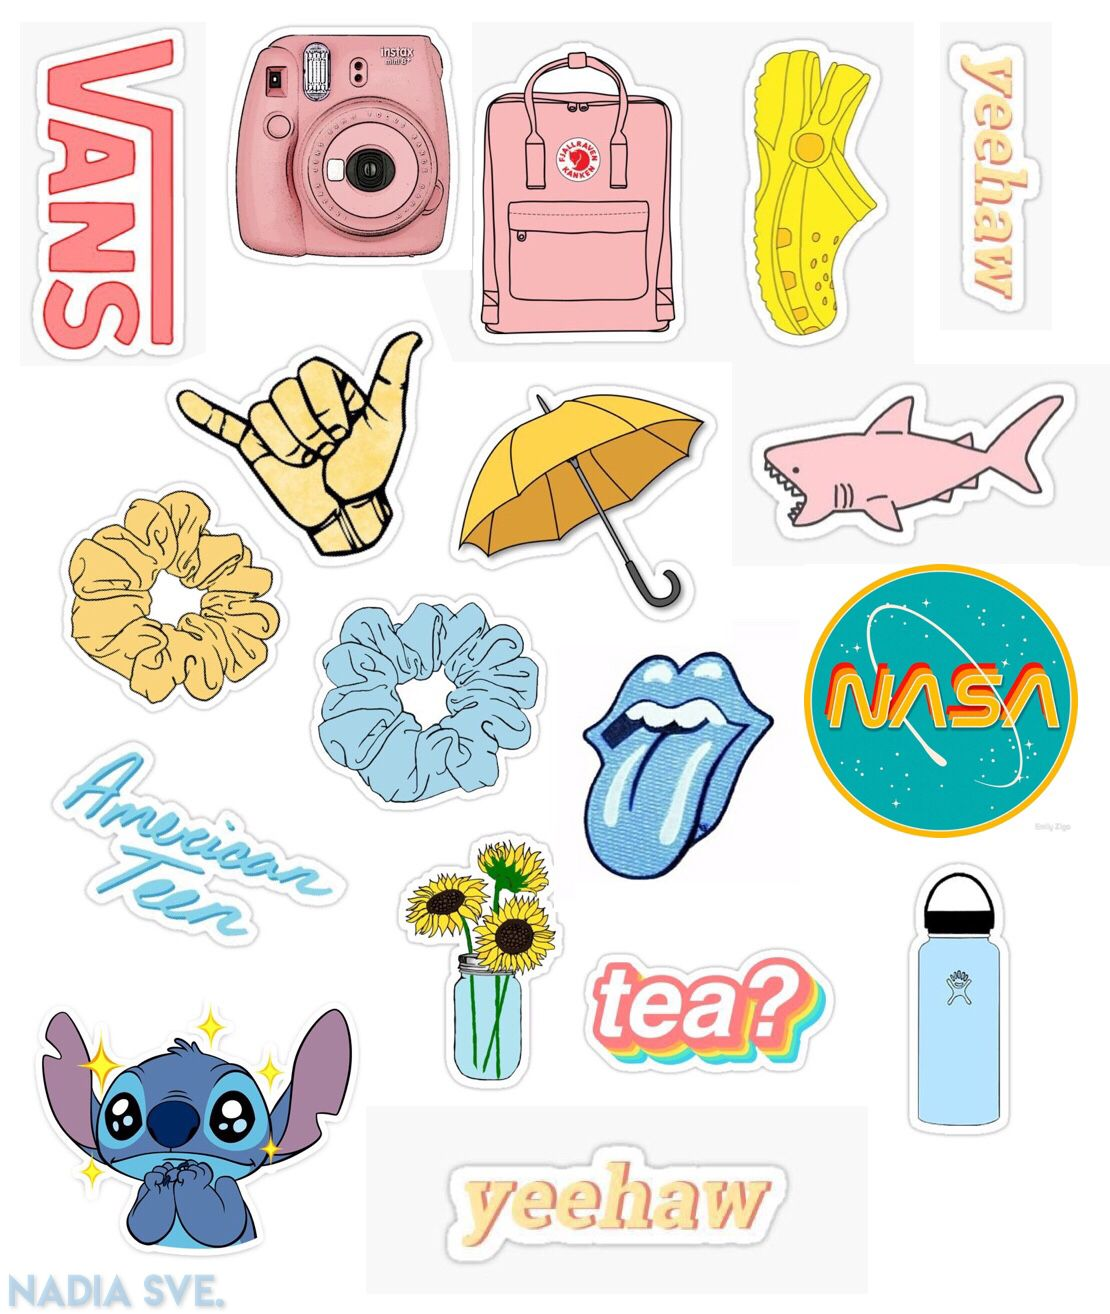 picture relating to Aesthetic Stickers Printable named An pretty much AESTHETIC sticker collage! (down load and print